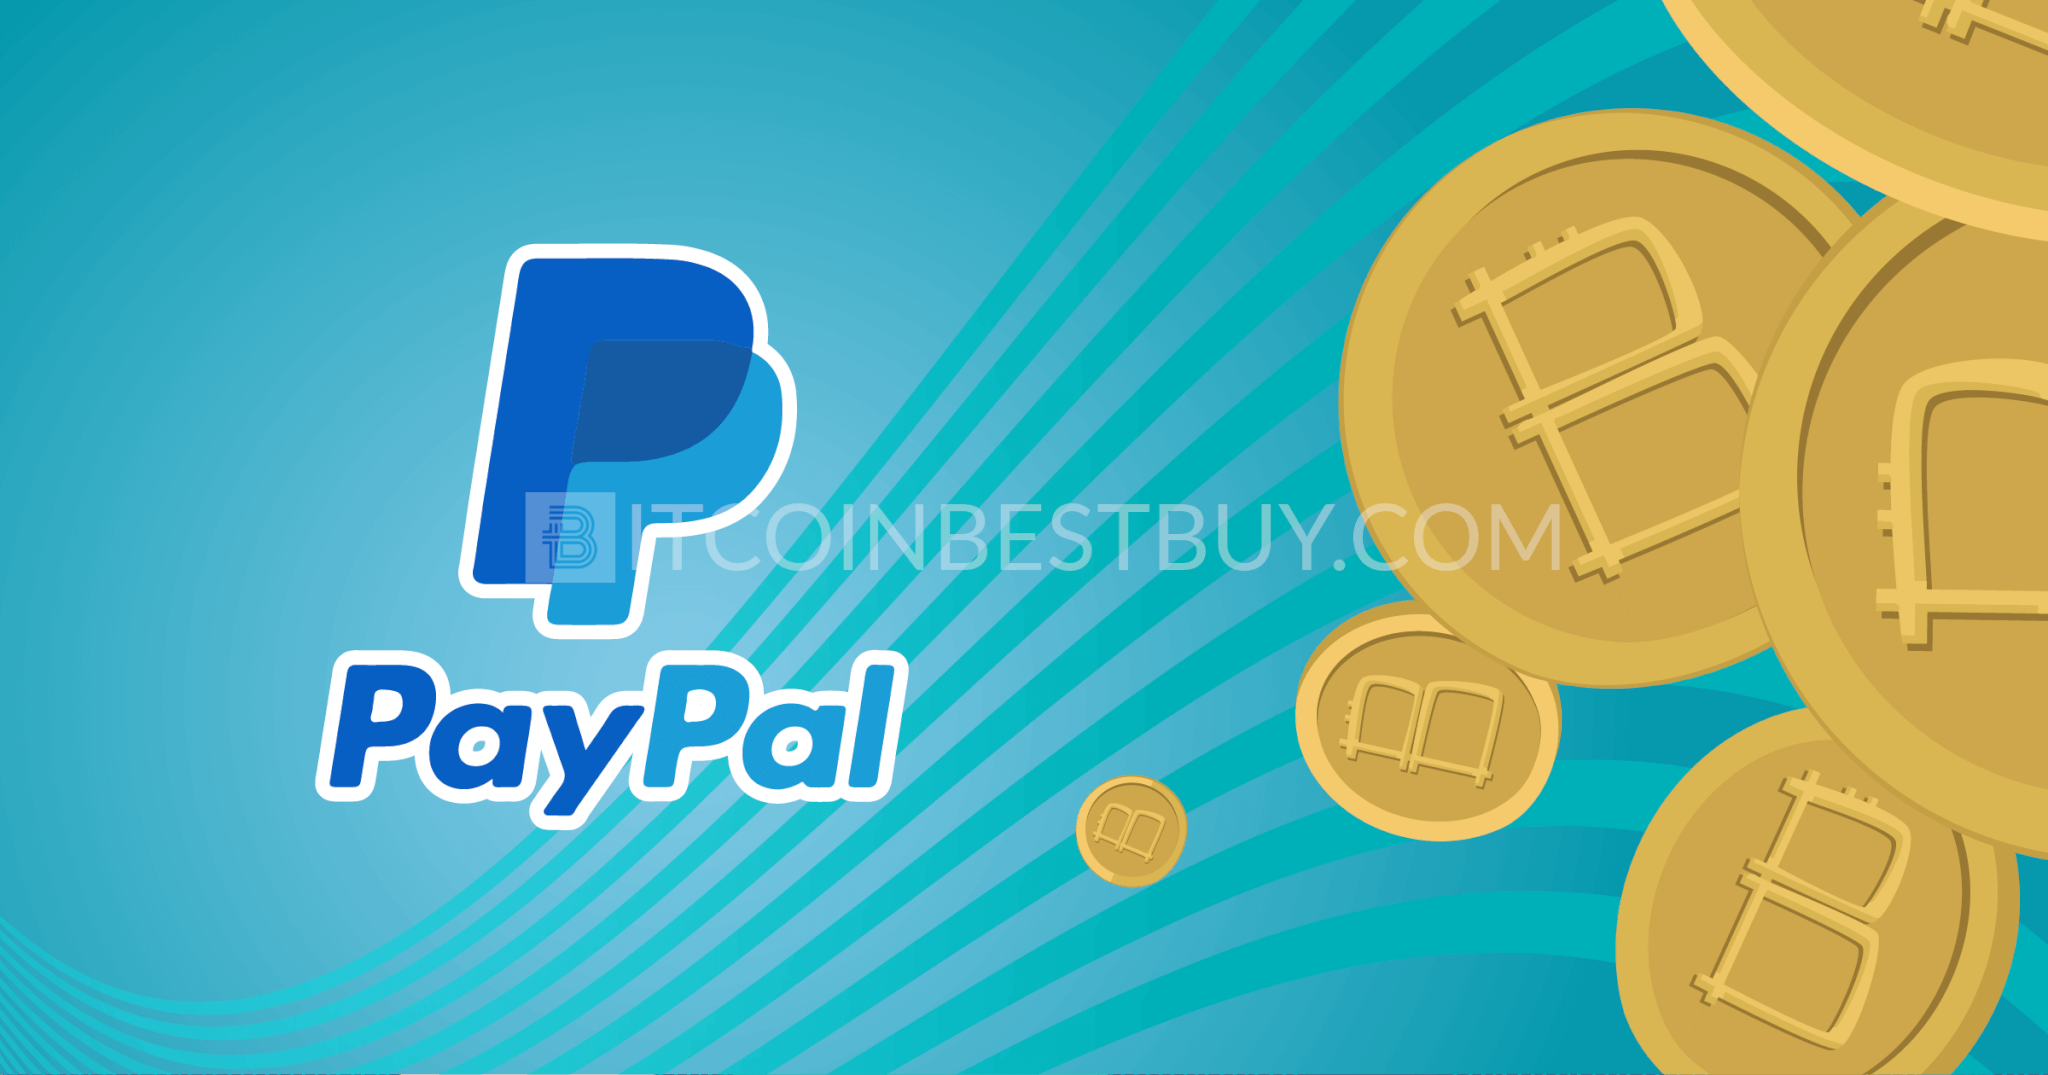 Buy bitcoins with paypal instantly ageless side cash in mail bitcoins value